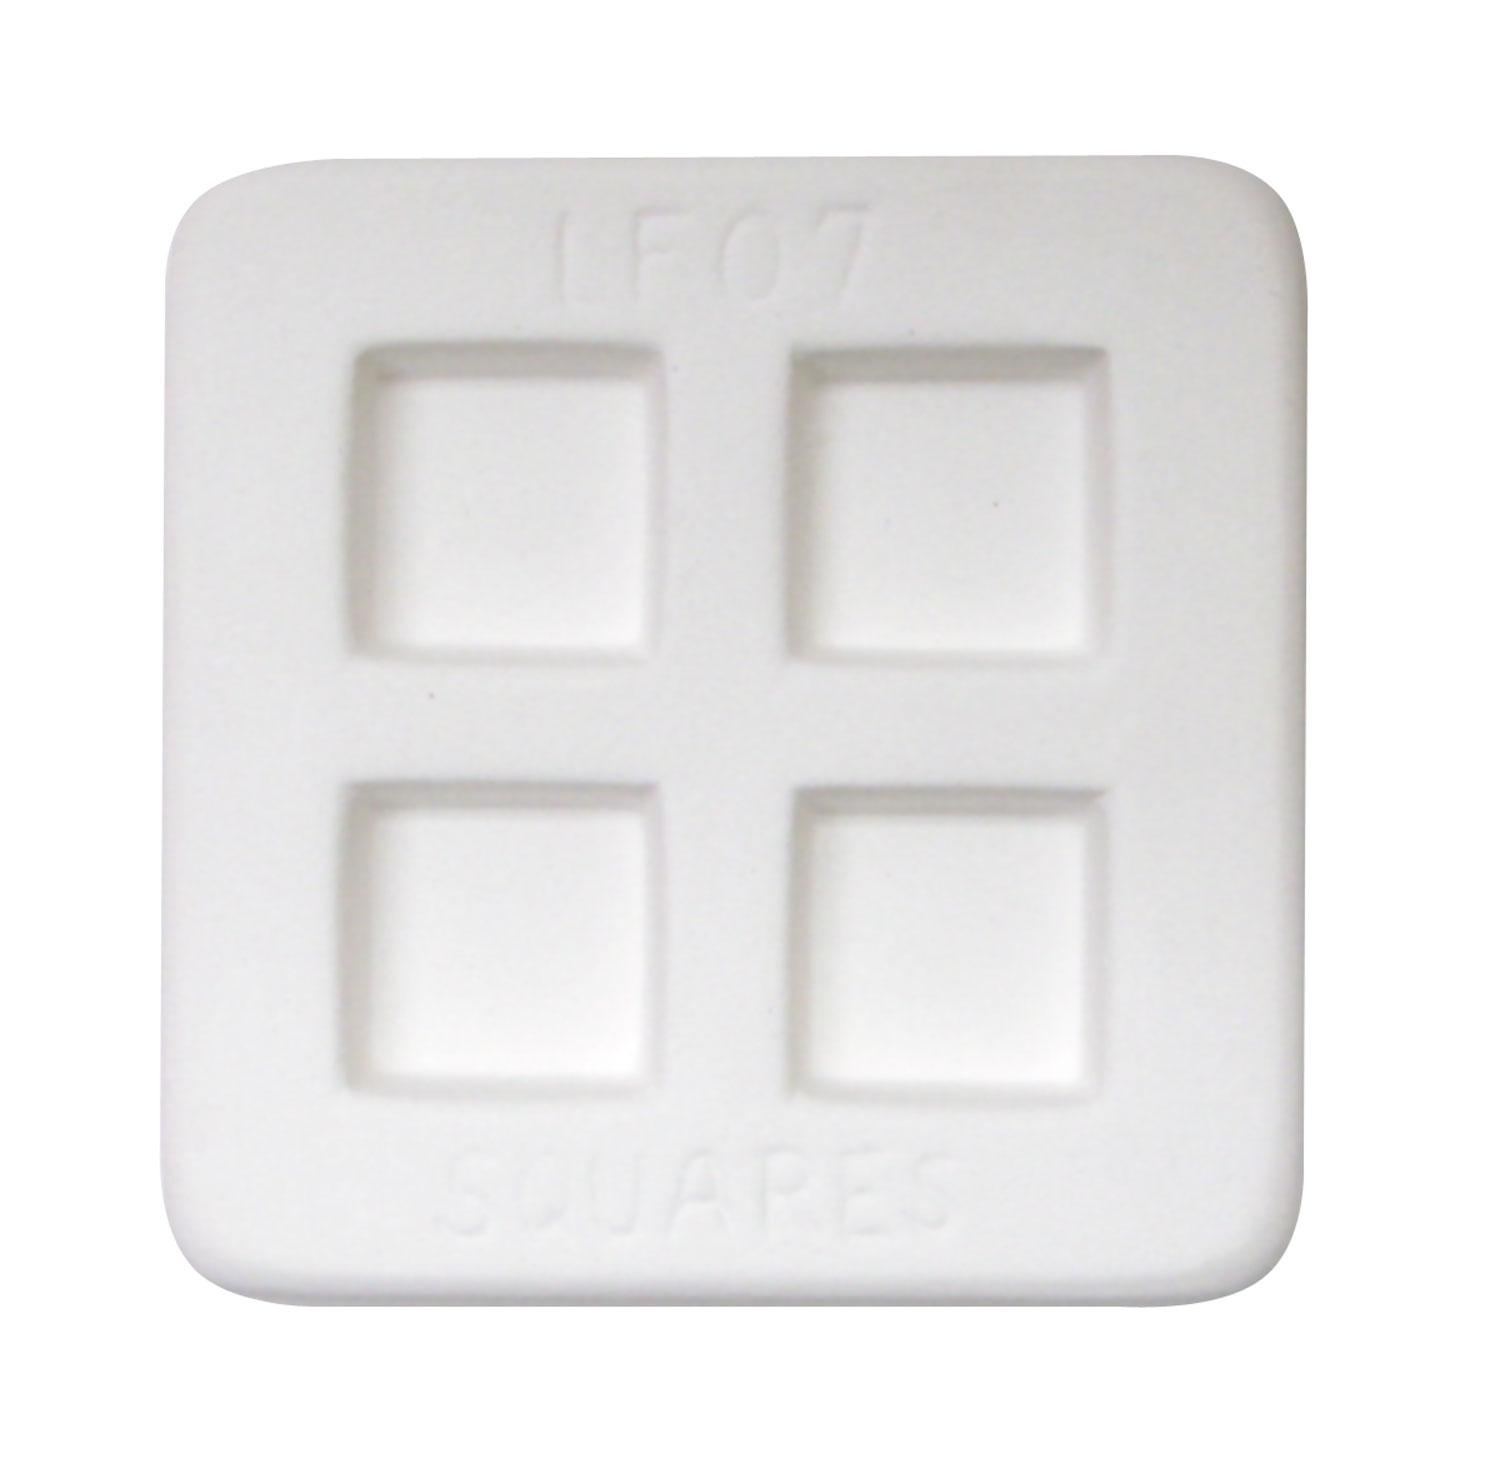 Square Pendants Mold